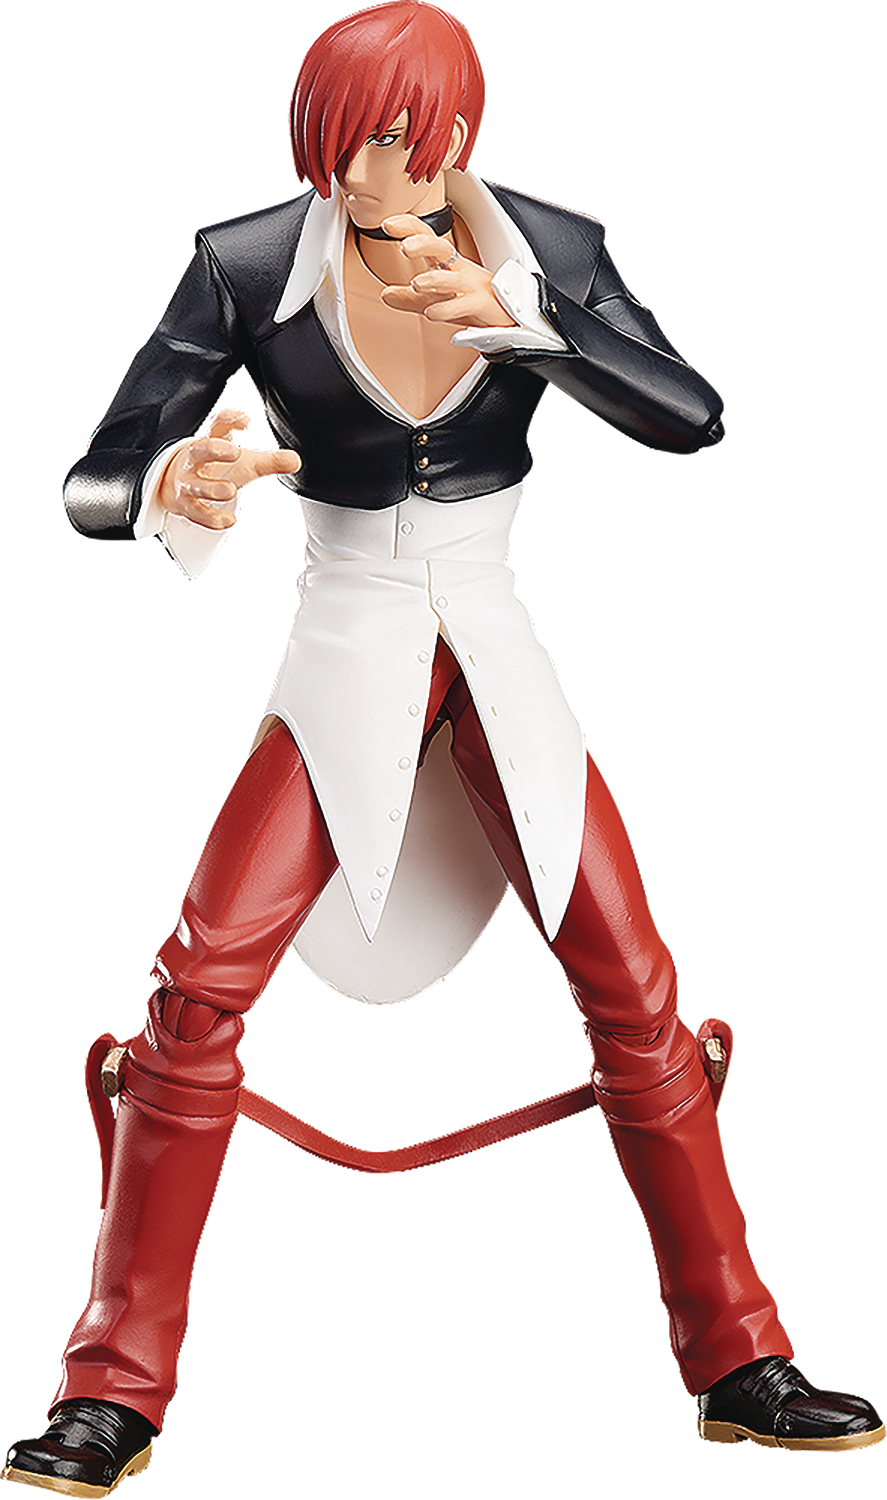 KING OF FIGHTERS 98 ULTIMATE MATCH IORI YAGAMI FIGMA